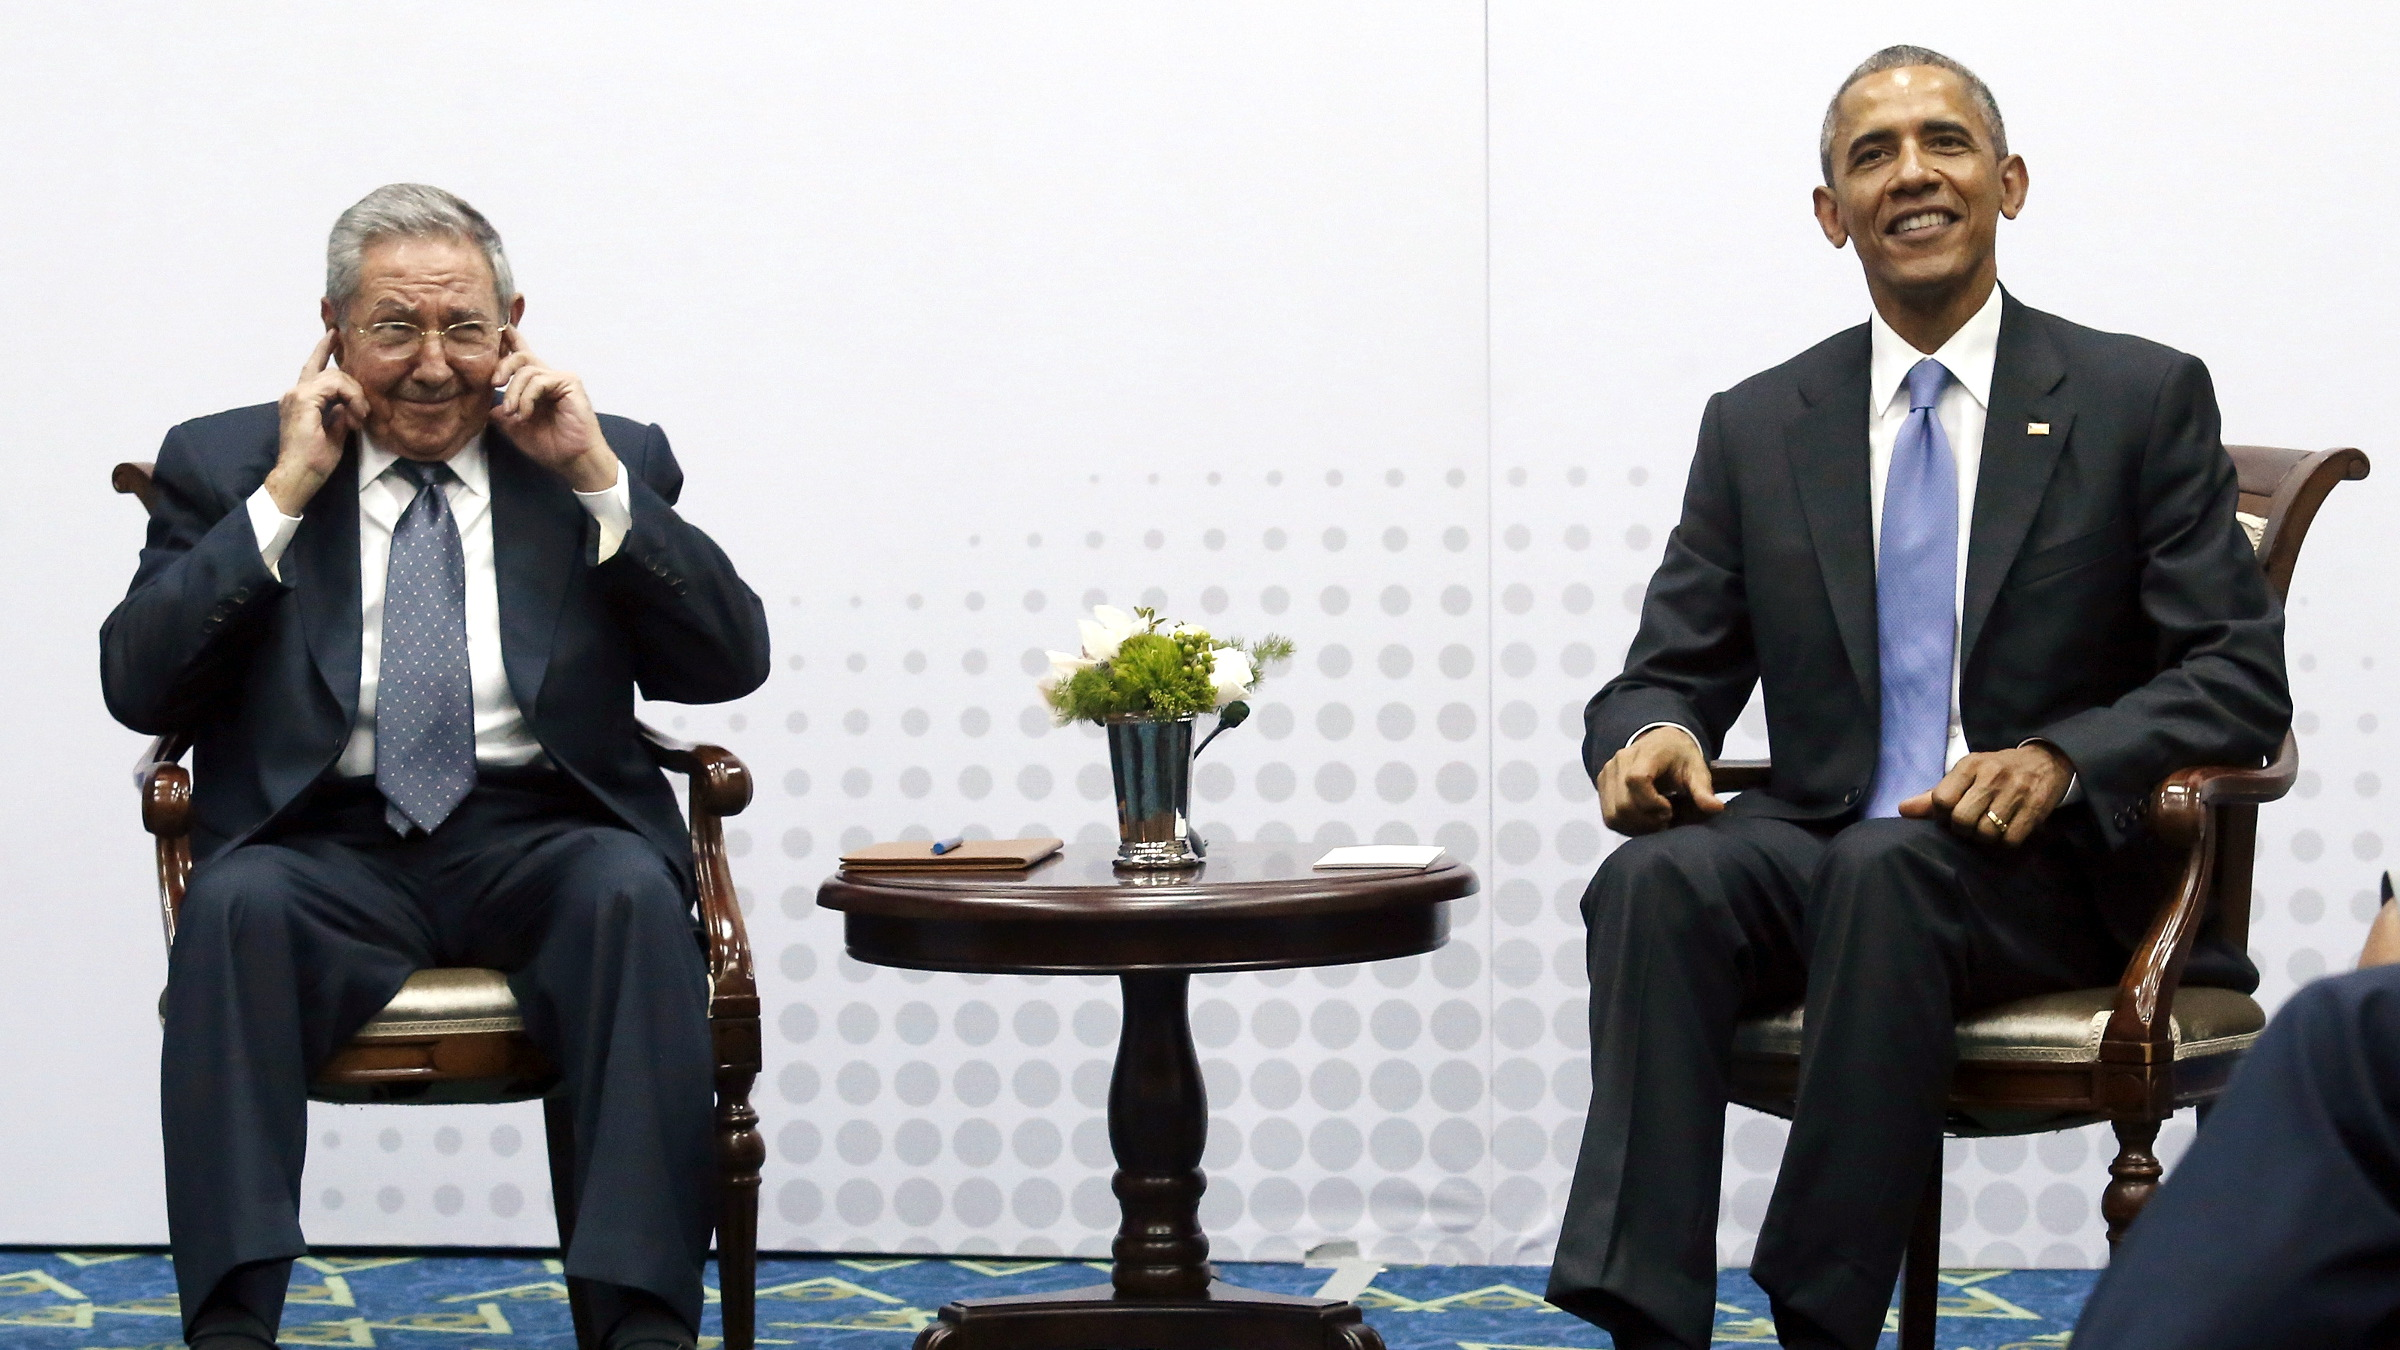 Cuba's President Raul Castro pretends not to hear questions from journalists as he and U.S. President Barack Obama hold a bilateral meeting during the Summit of the Americas in Panama City, Panama April 11, 2015. Neither president took questions from the press. Obama and Castro shook hands on Friday at the summit, a symbolically charged gesture as the pair seek to restore ties between the Cold War foes.